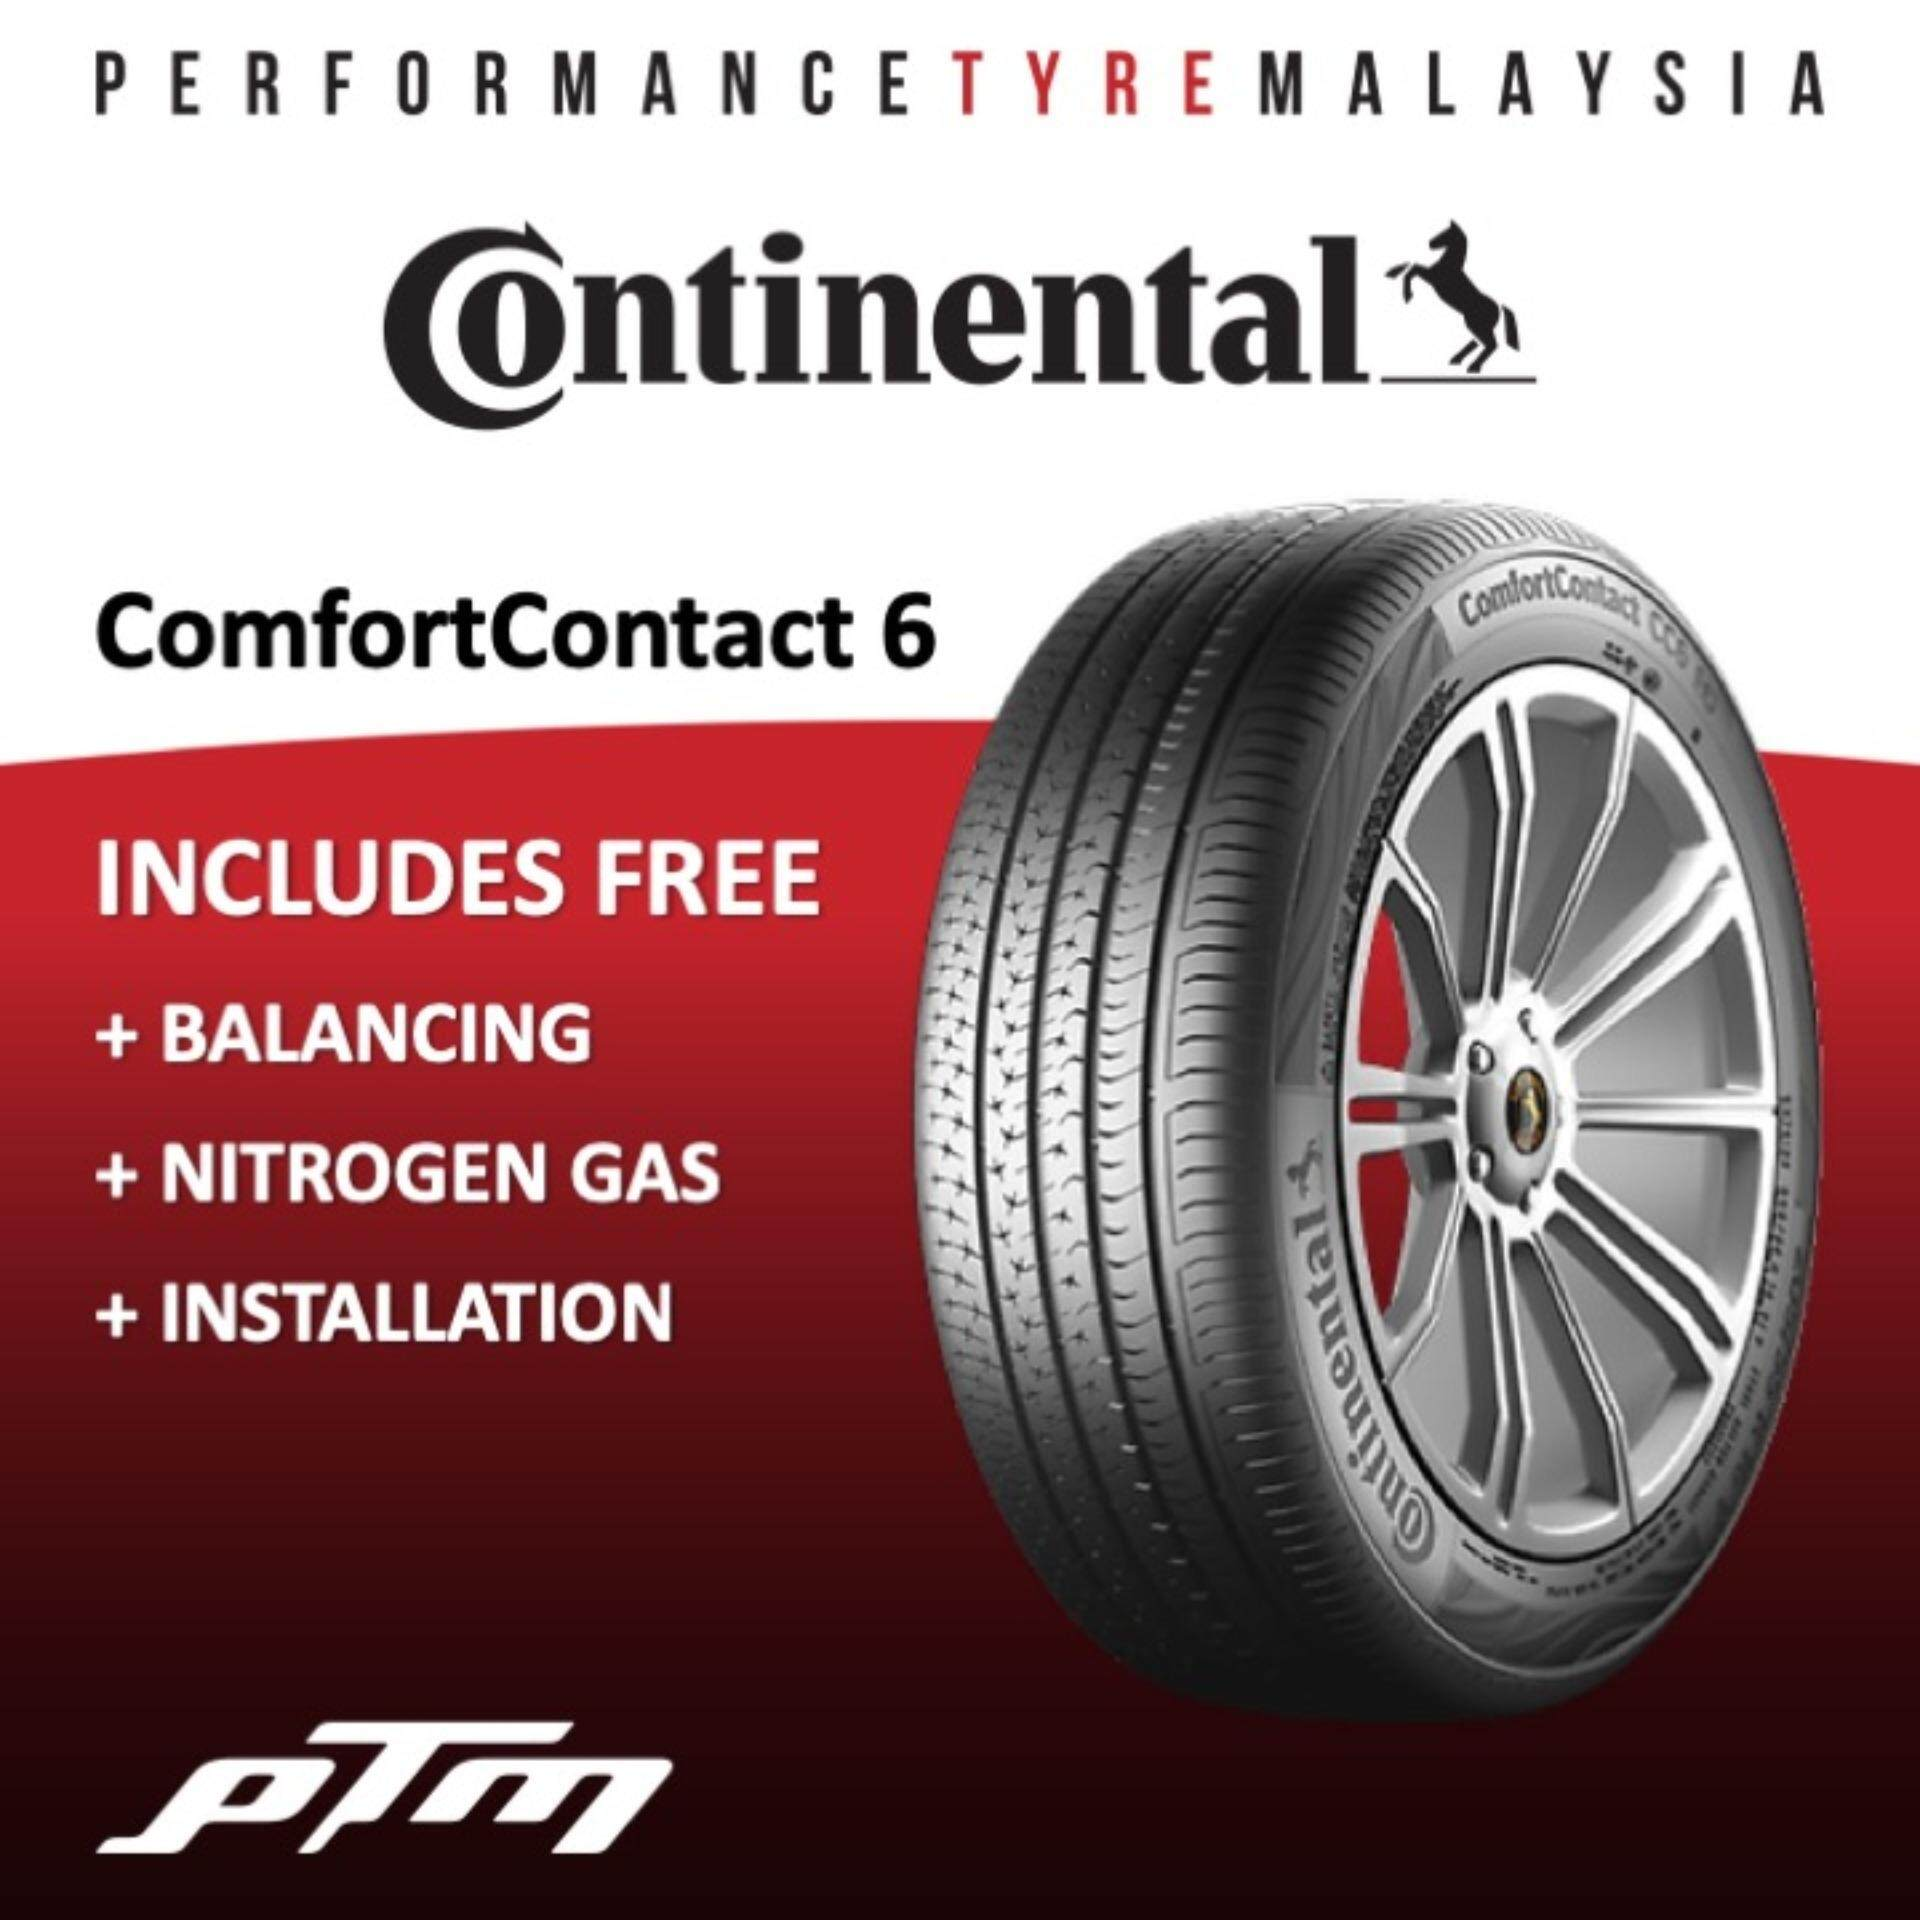 Continental Comfort Contact 6 Cc6 175/65r14 Tyre Myvi, Axia, Iriz, Bezza (free Installation) Tayar Tire By Performance Tyre Malaysia Ptm.